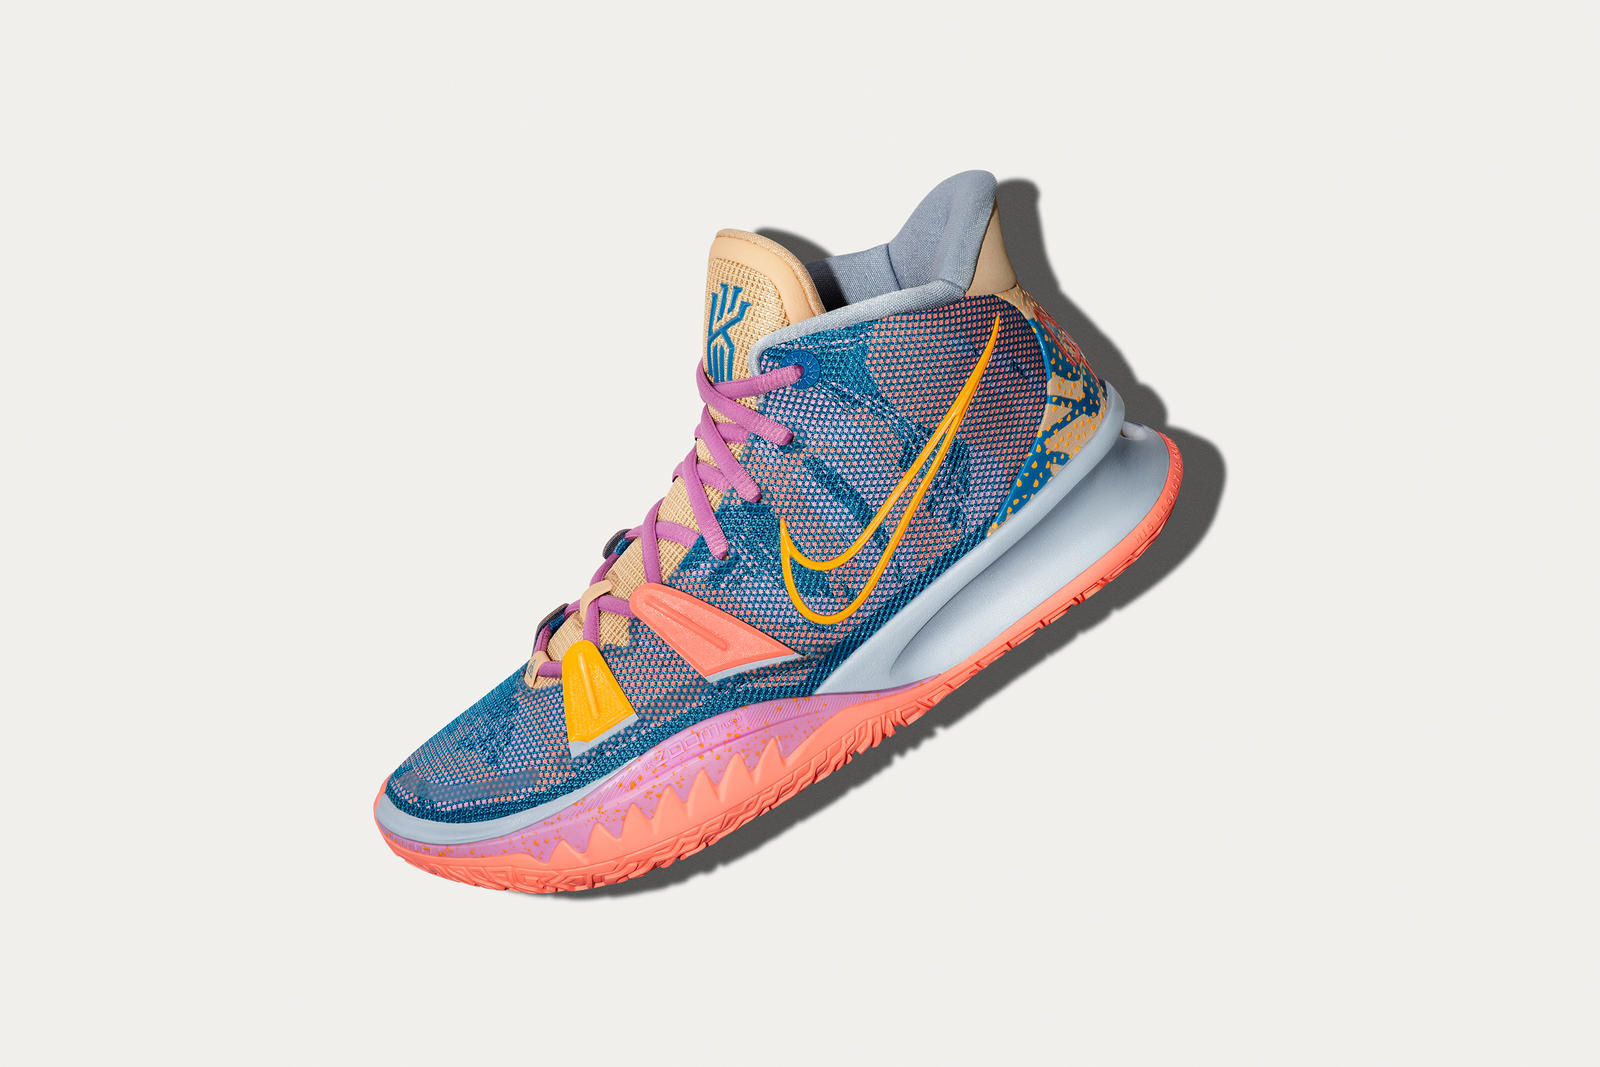 kyrie-7-kyrie-irving-shoes-basketball